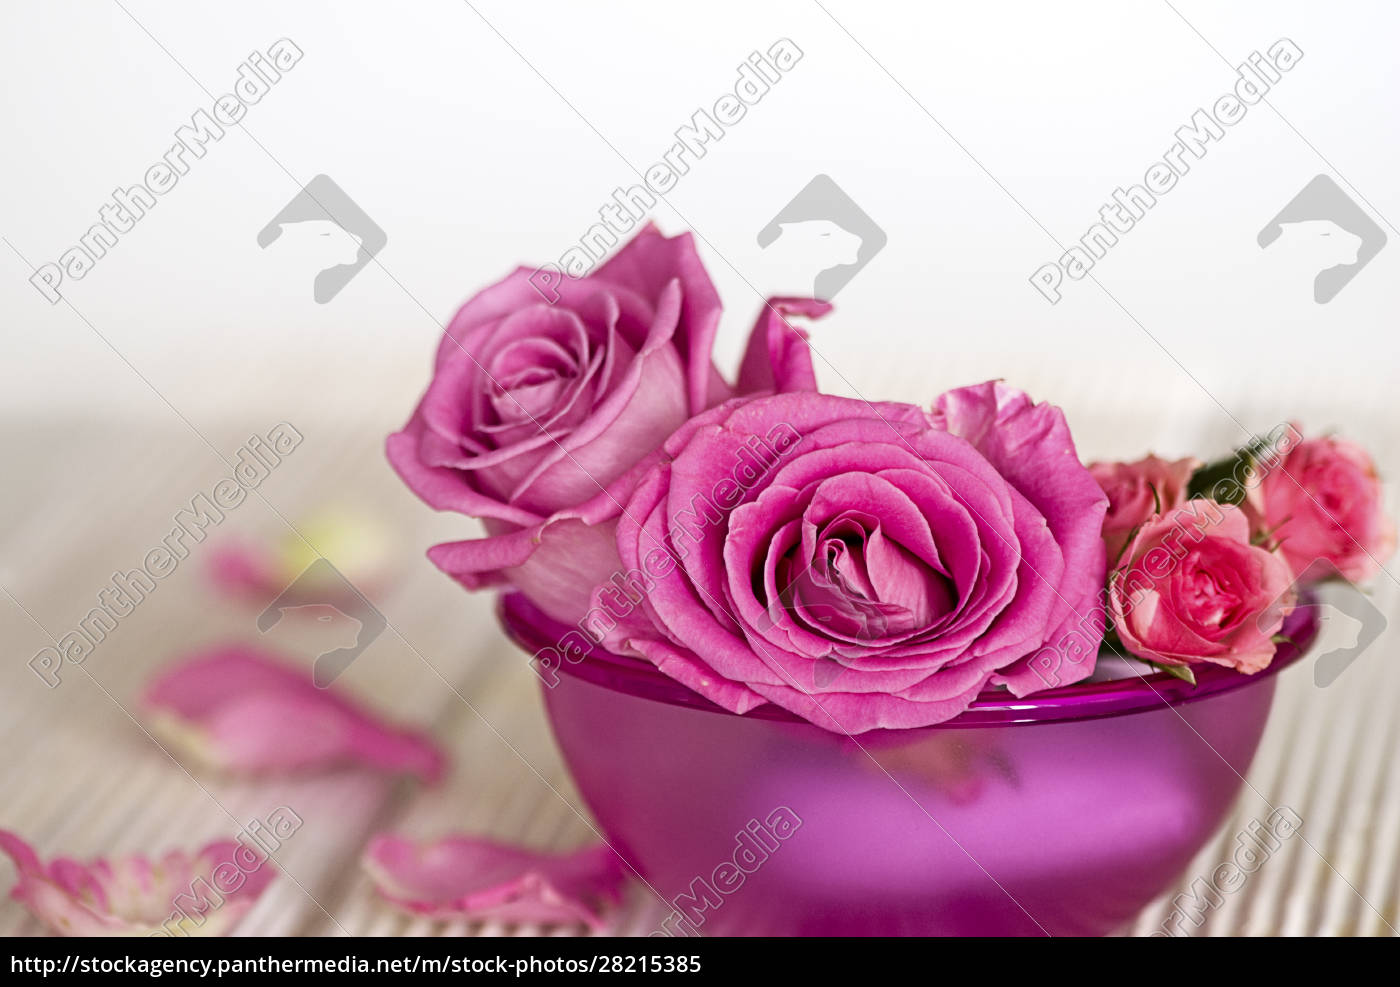 pink, roses, in, a, pink, bowl - 28215385